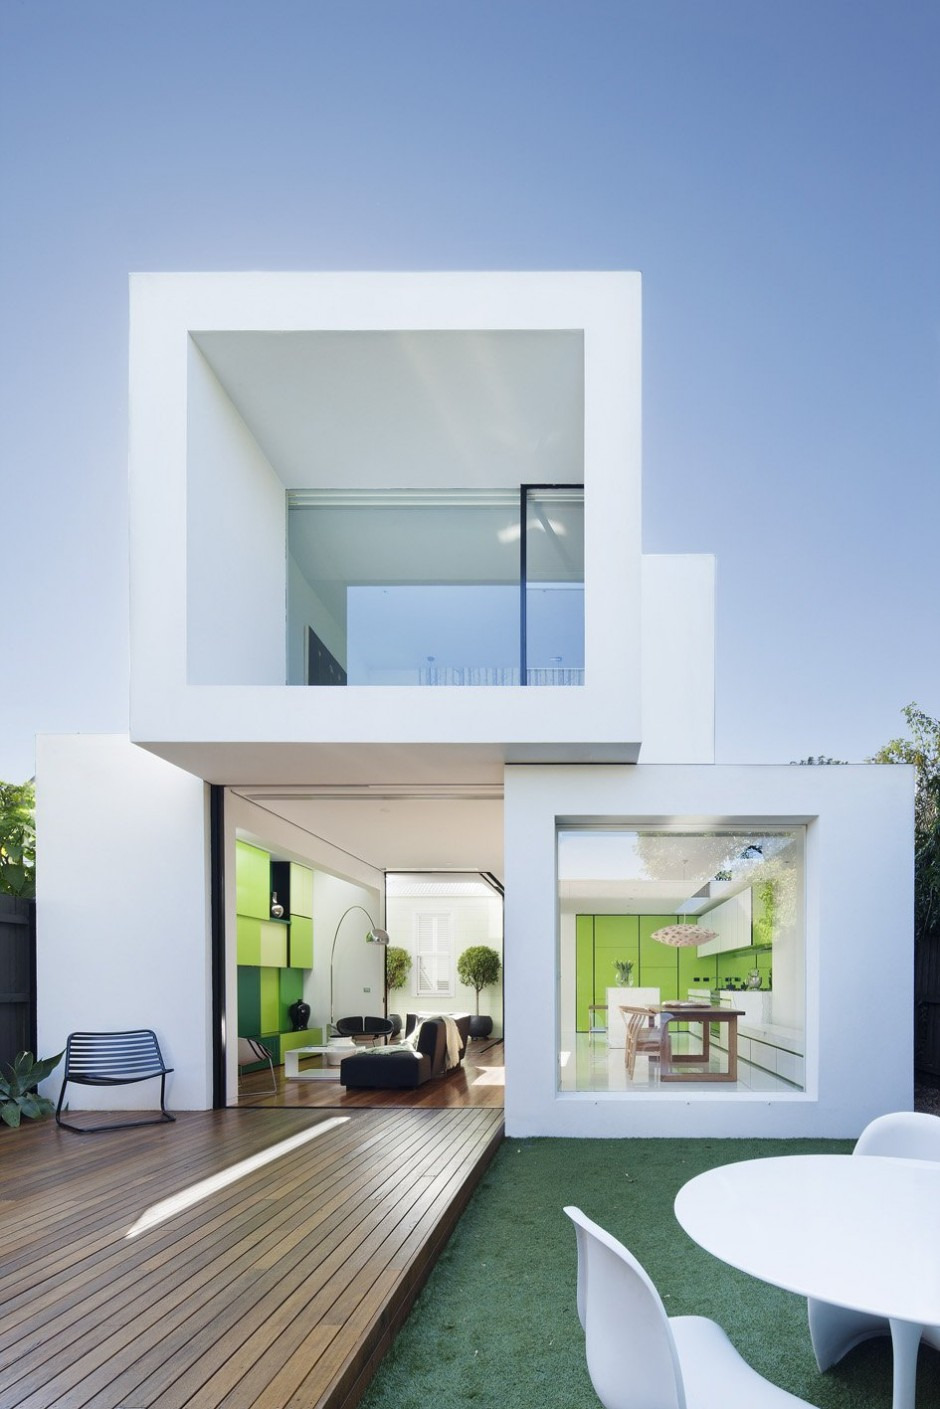 Most Modern House Ever Awesome top 50 Modern House Designs Ever Built Architecture Beast